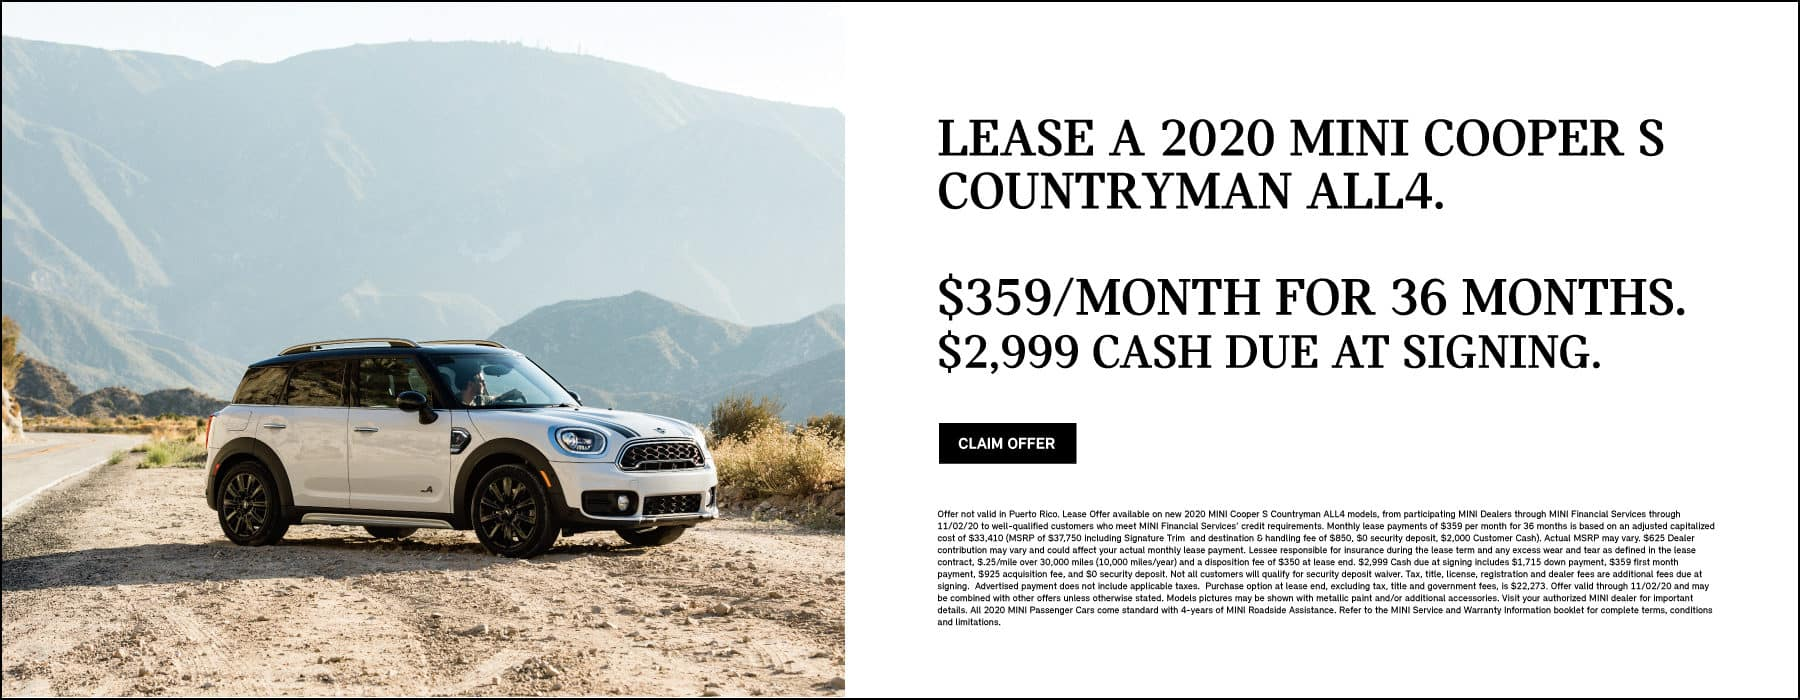 Lease a 2020 MINI Cooper S Countryman ALL4. $359/month for 36 months. $2,999 cash due at signing.